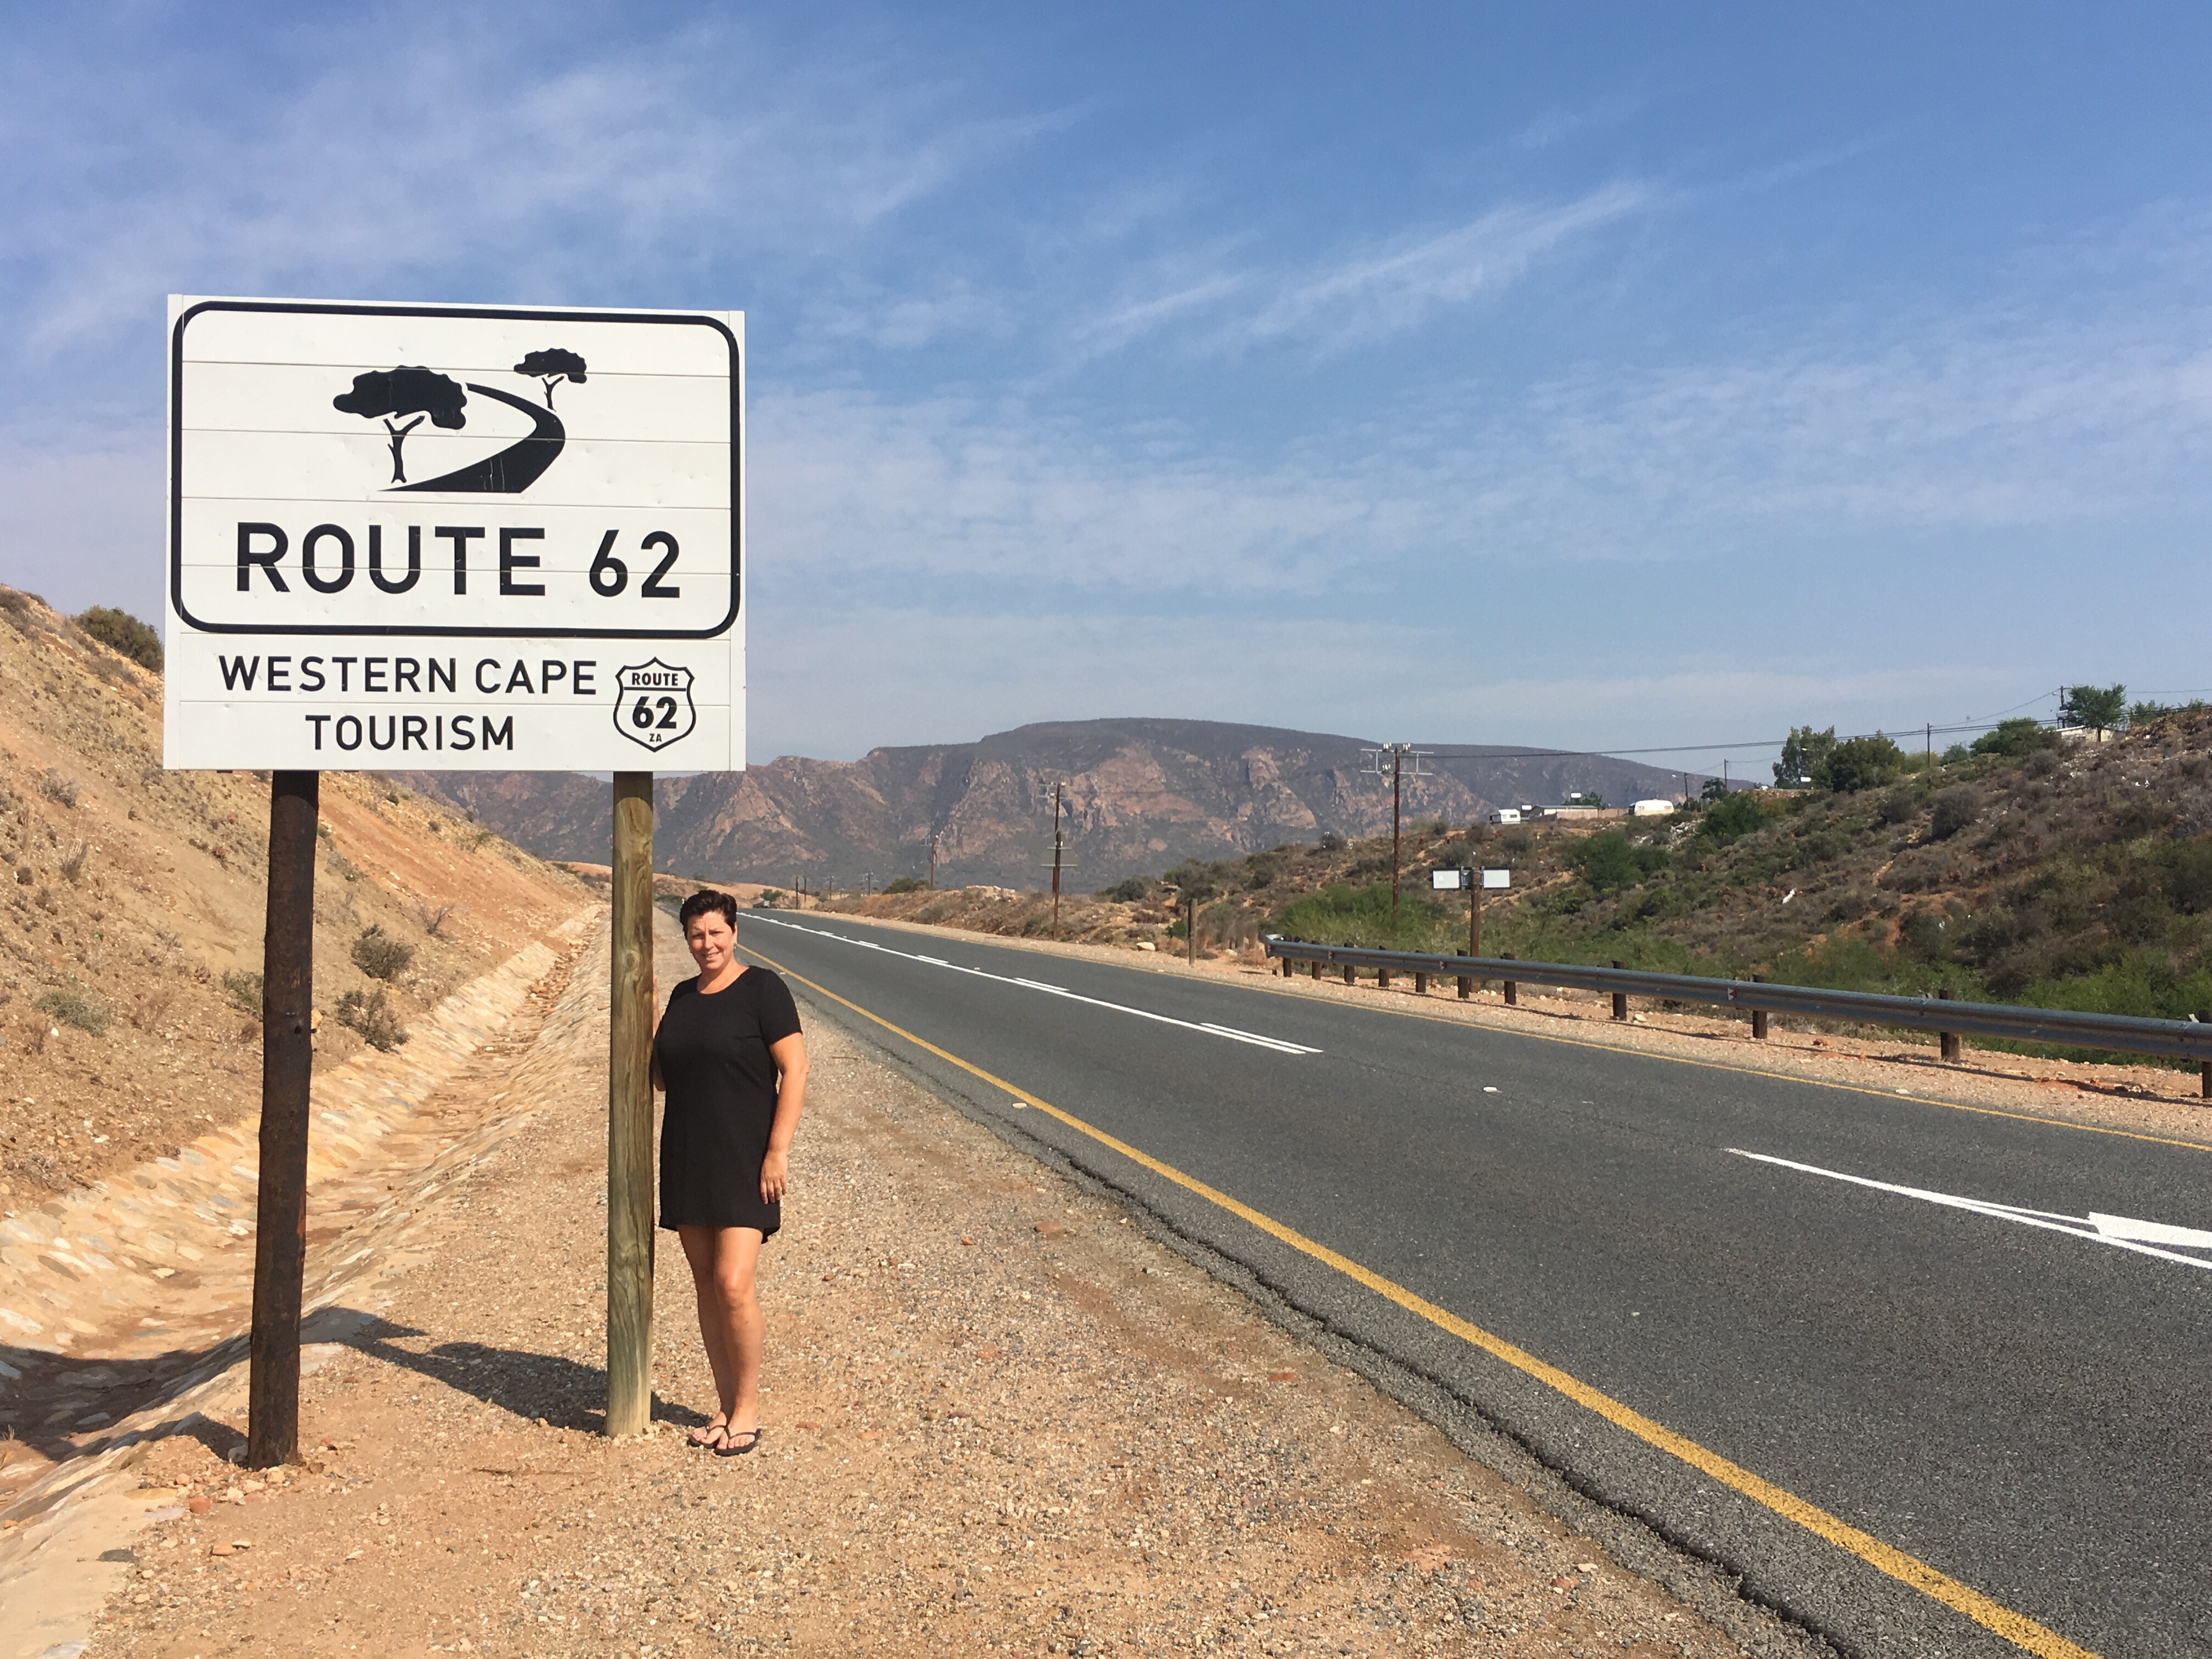 route 62 zuid afrika